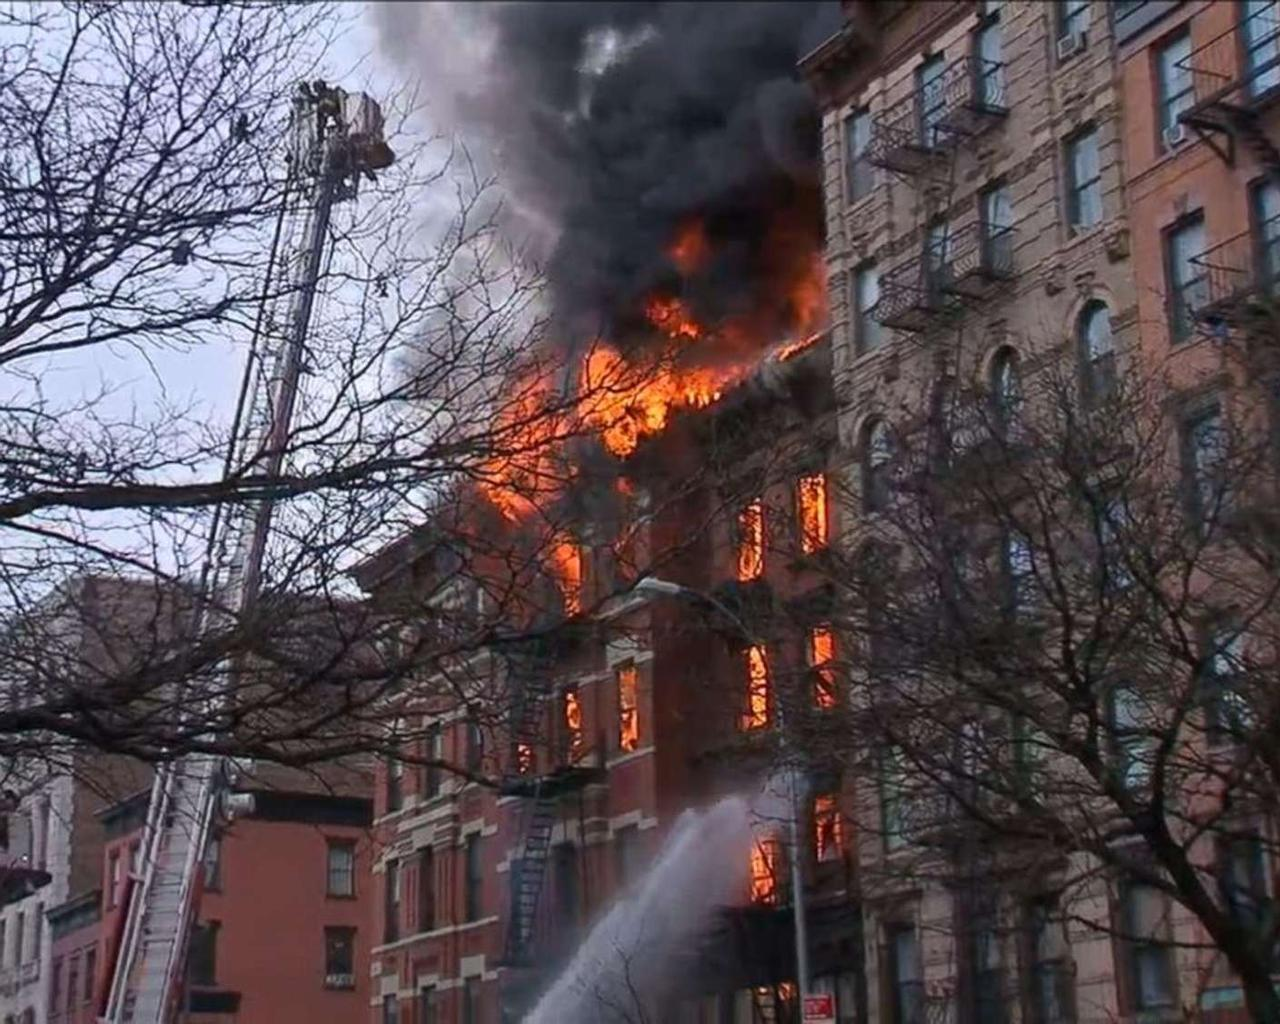 An eight-alarm fire in a New York City building clears hundreds